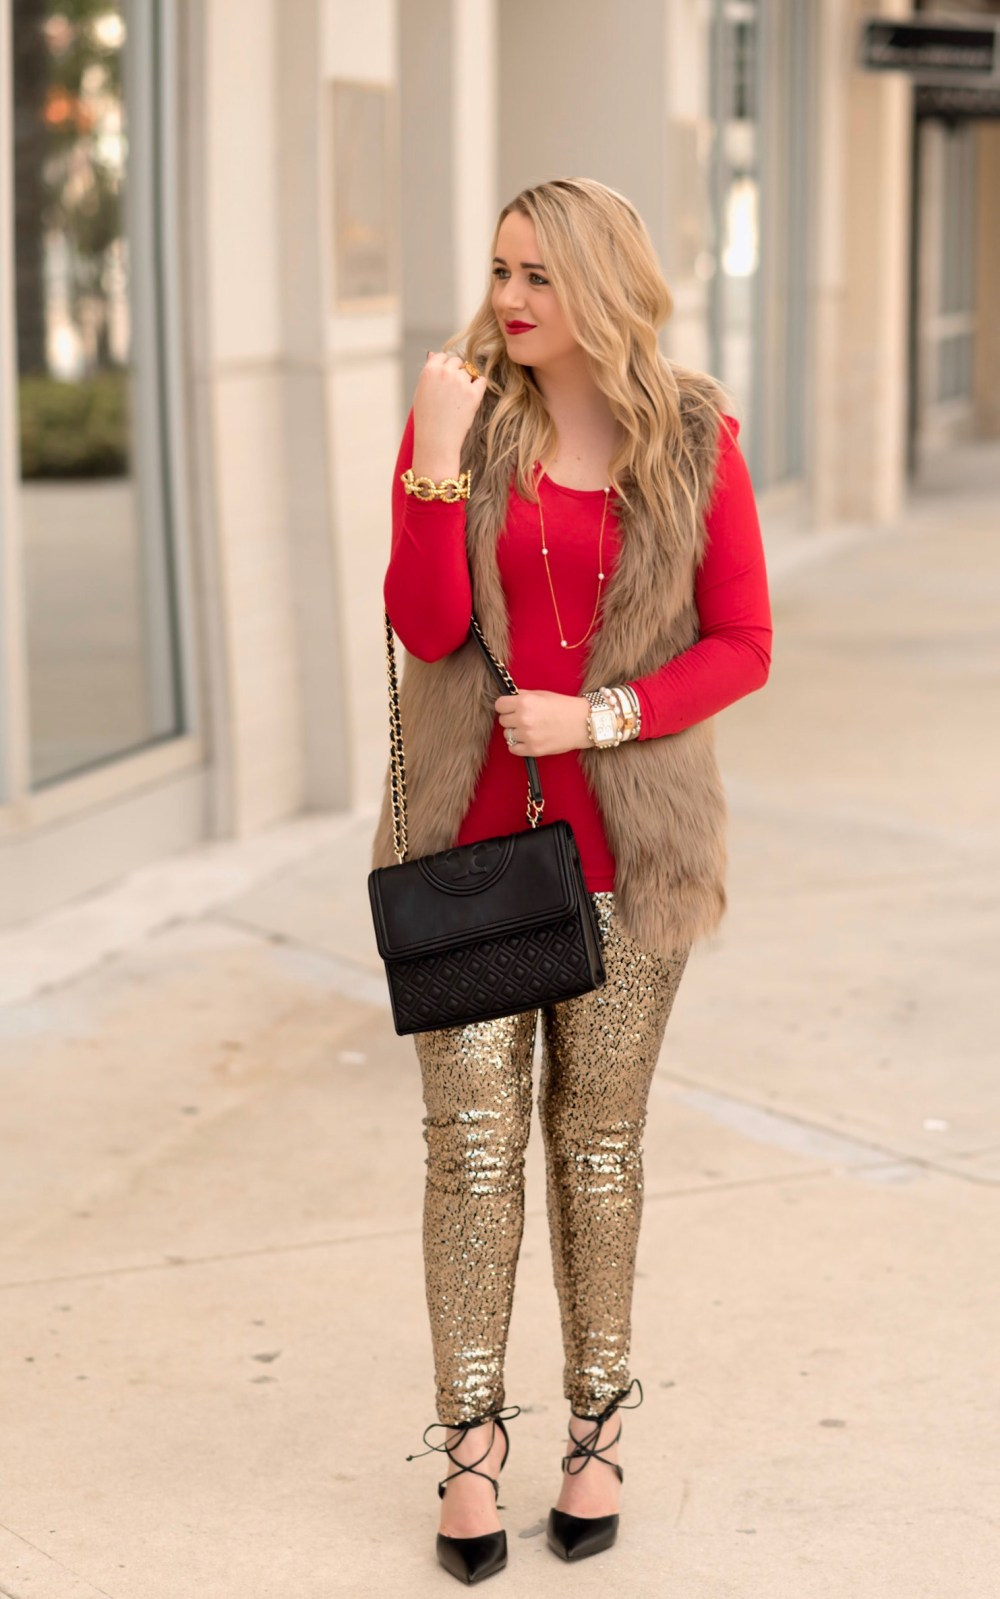 gianni-bini-fan-fav-tabitha-pull-on-sequin-leggings-fancy-things